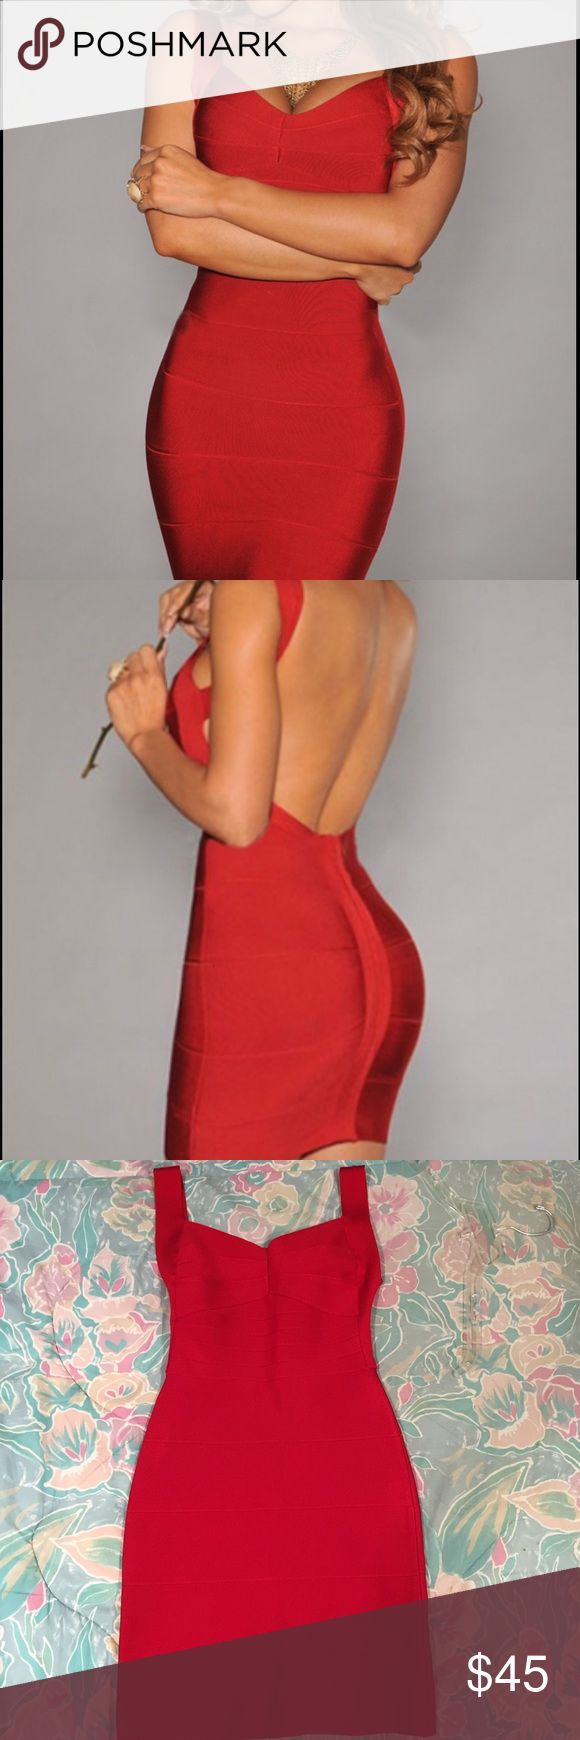 Red Bandage Dress Switch into the right gear with this curve hugging backless bandage dress from Hot Miami Styles. You can't go wrong with a little red dress! Hot Miami Styles Dresses Backless